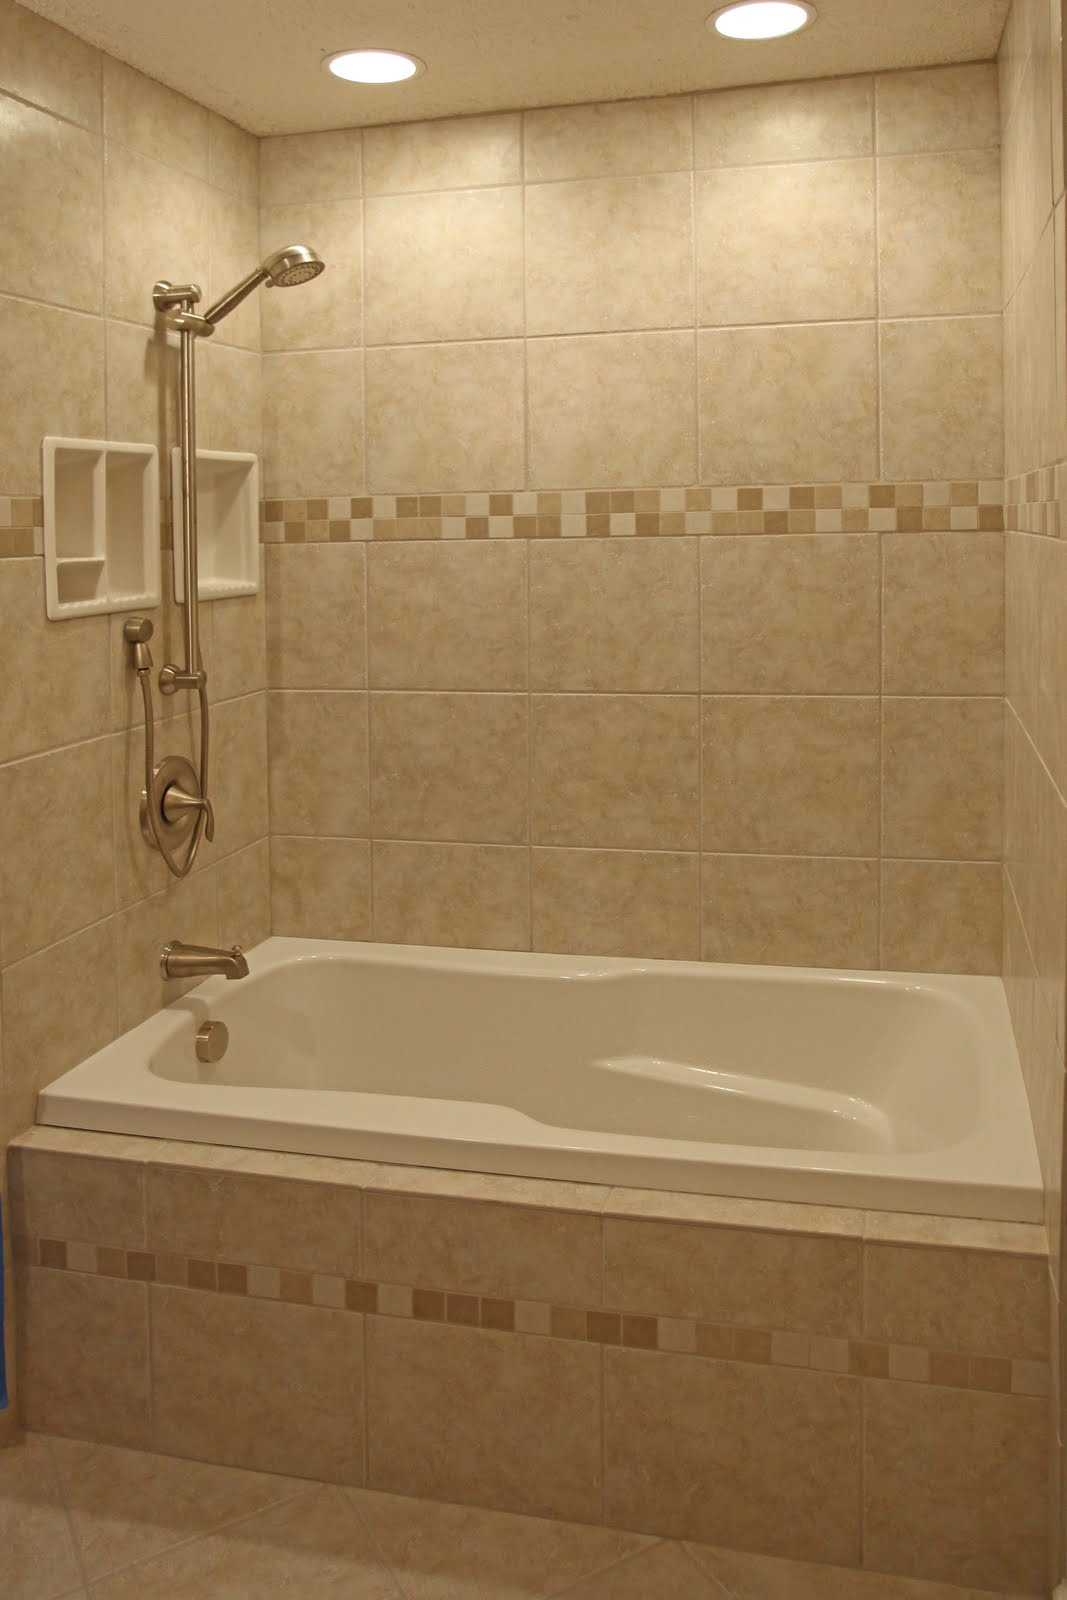 Bathroom shower tile design ideas bathroom designs in Bathroom tub tile design ideas